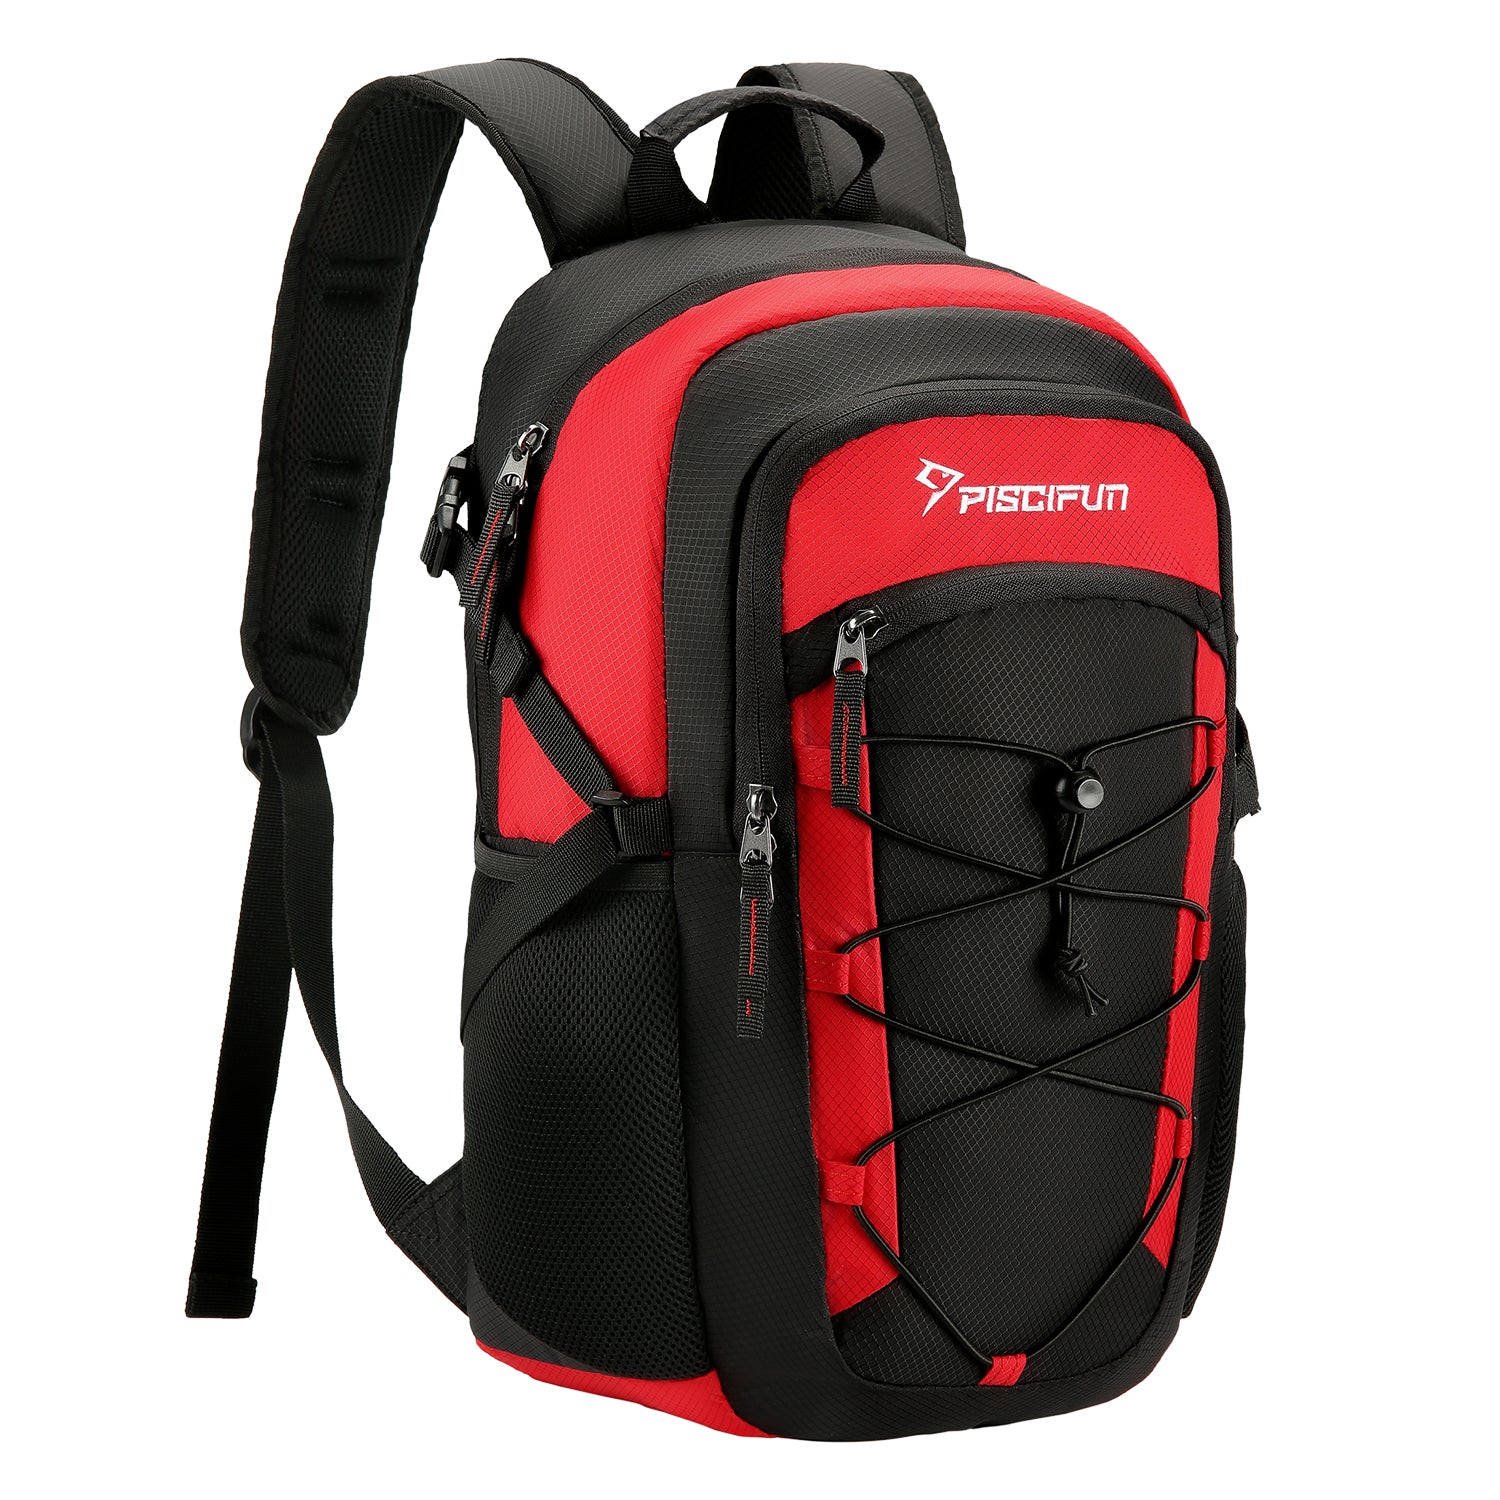 bae396d47070 Piscifun® Frigid Cooler Backpack for Lunch Picnic Fishing Hiking Campi